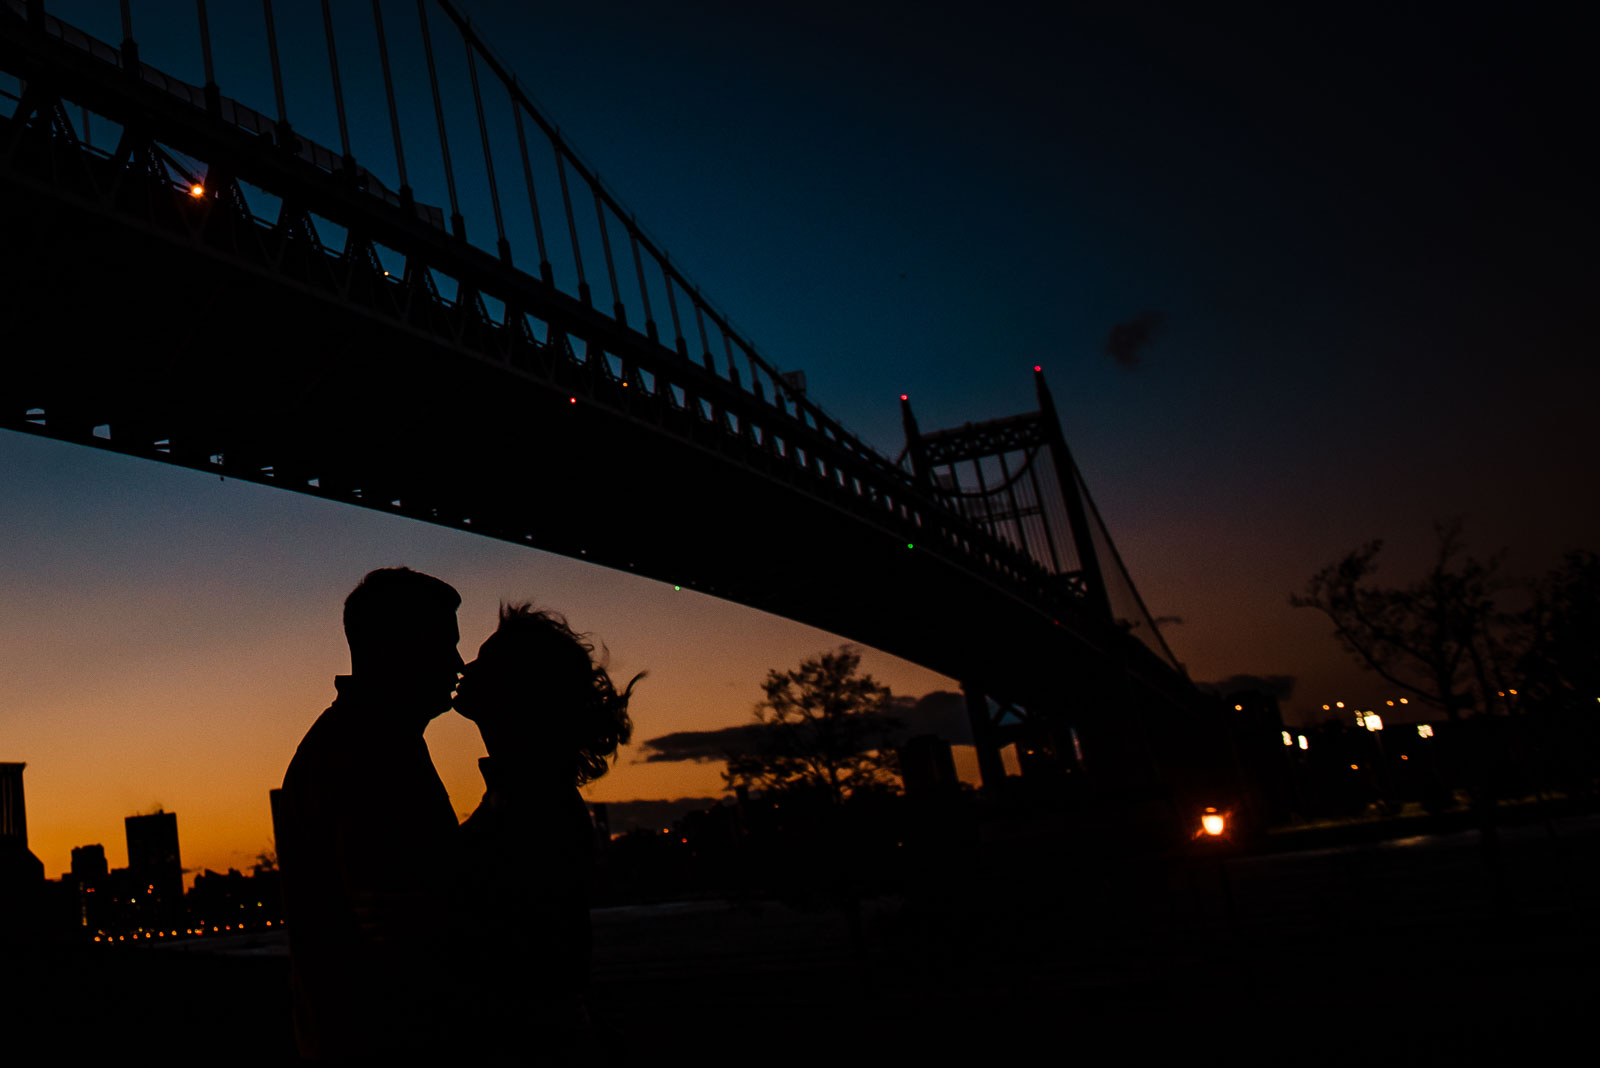 Couple's portrait with bridge